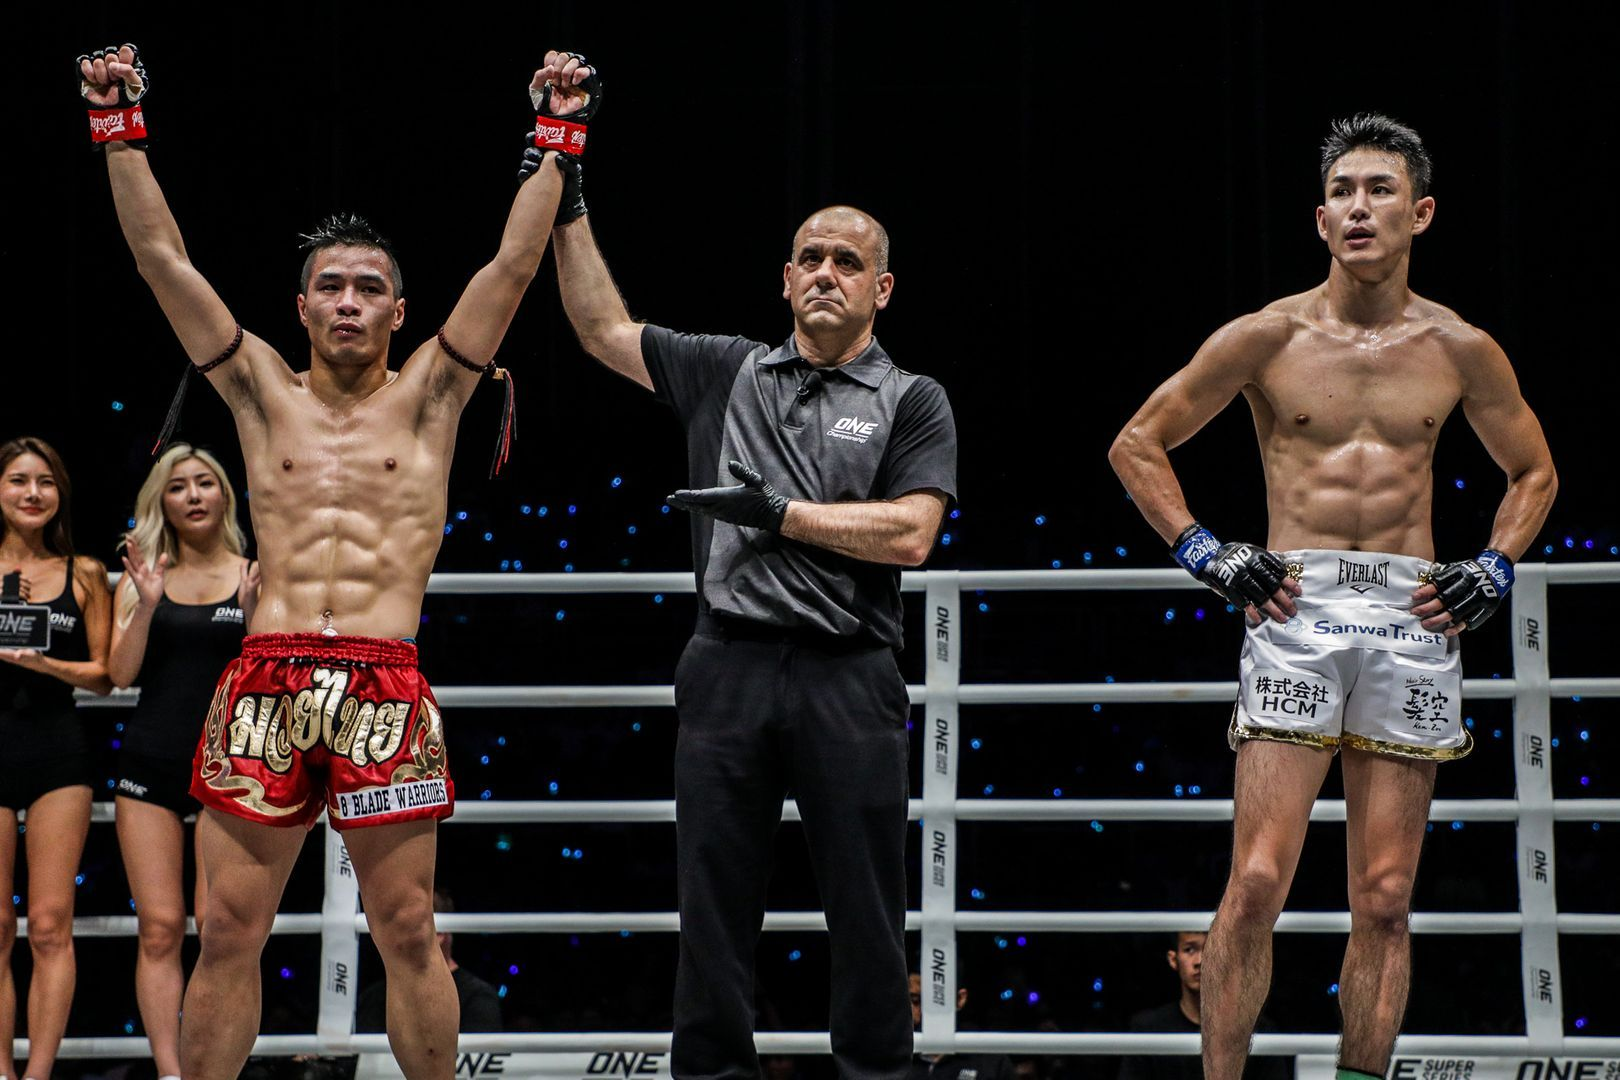 Chris Nguyen takes the judges' decision against Yukinori Ogasawara at ONE IMMORTAL TRIUMPH